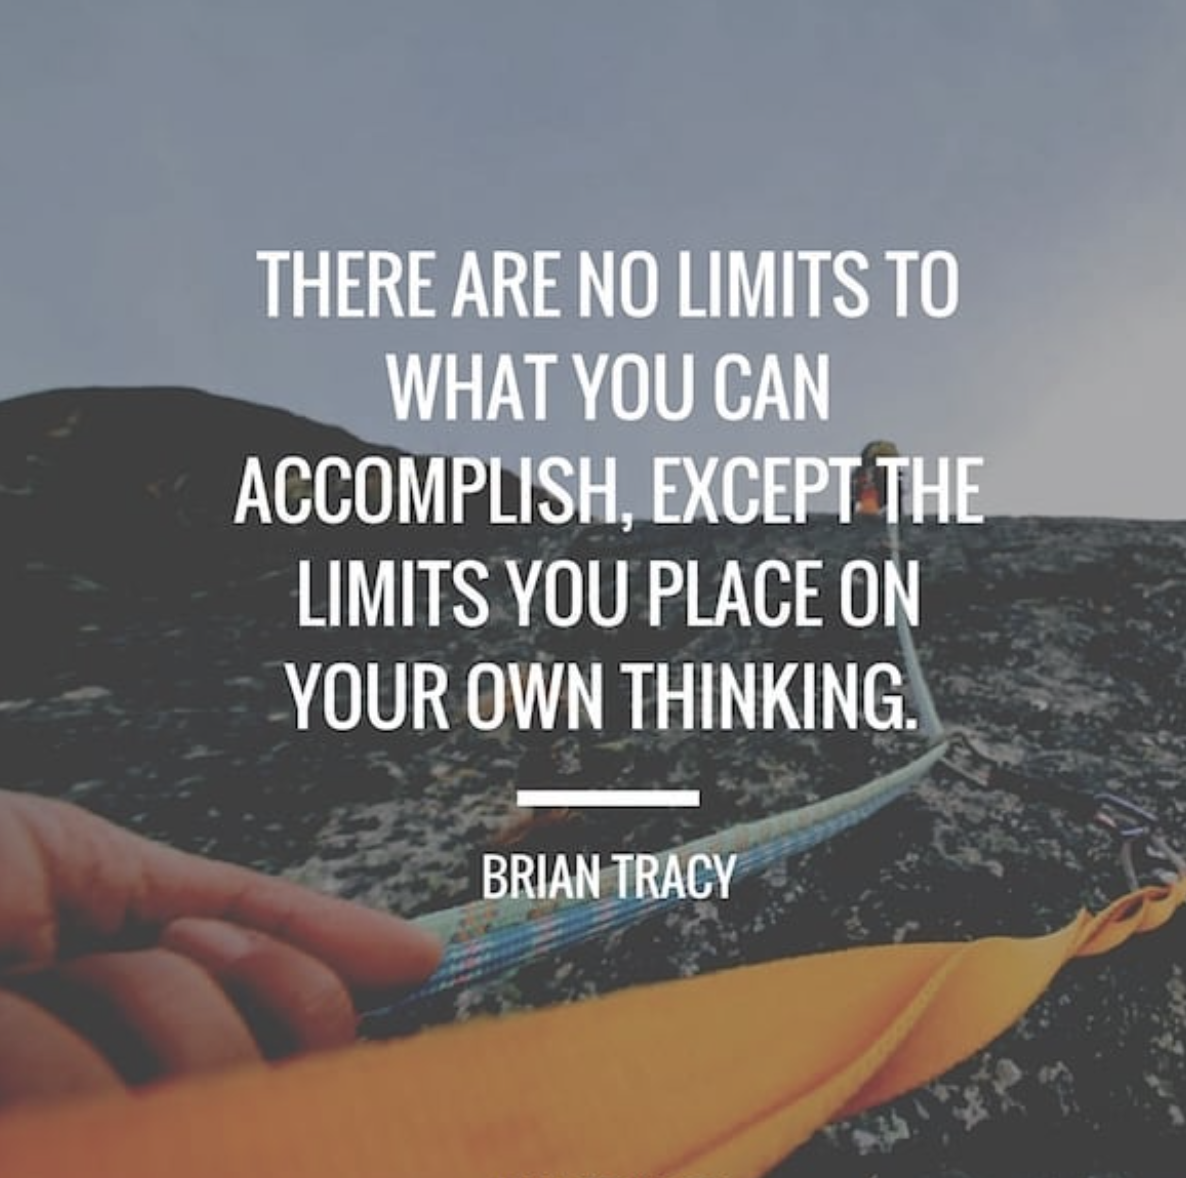 [Image] There are no limits to what you can accomplish, except the limits you place on your own thinking.